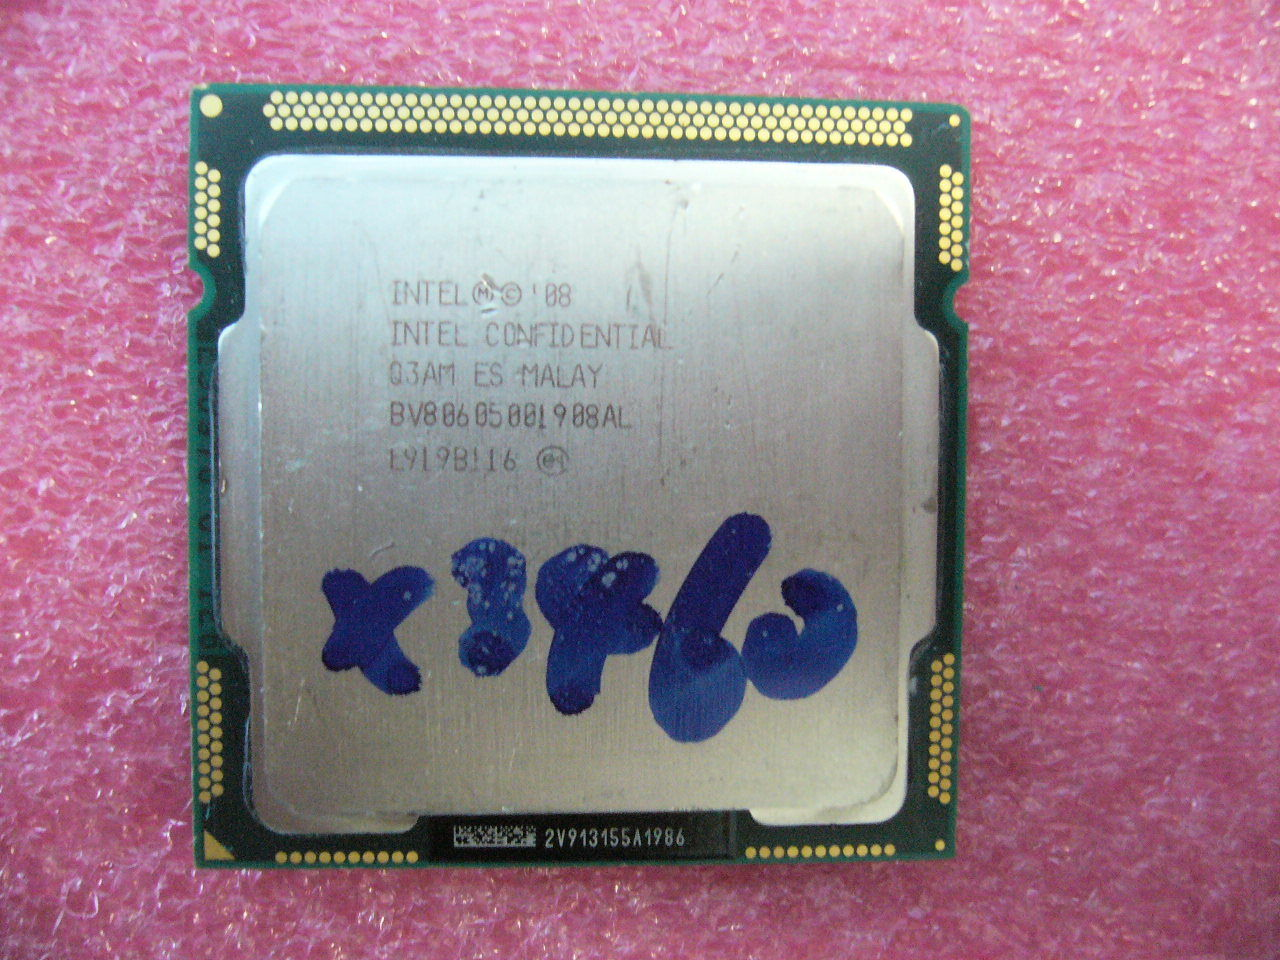 QTY 1x INTEL Xeon ES CPU X3460 2.80GHZ/8MB LGA1156 Q3AM BV80605001908AL